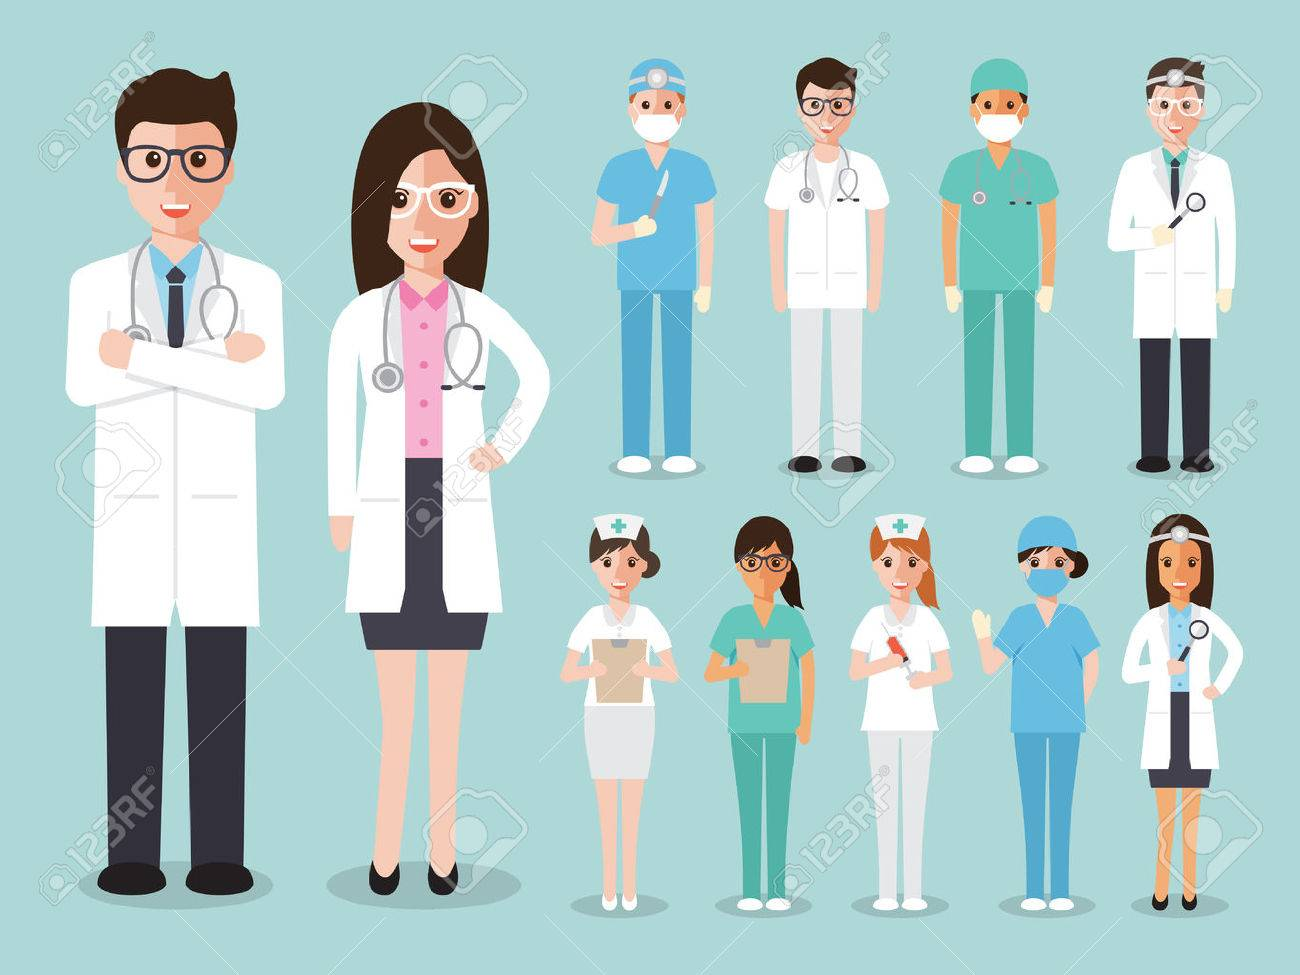 doctors and nurses and medical staffs flat design icon set - 54710924